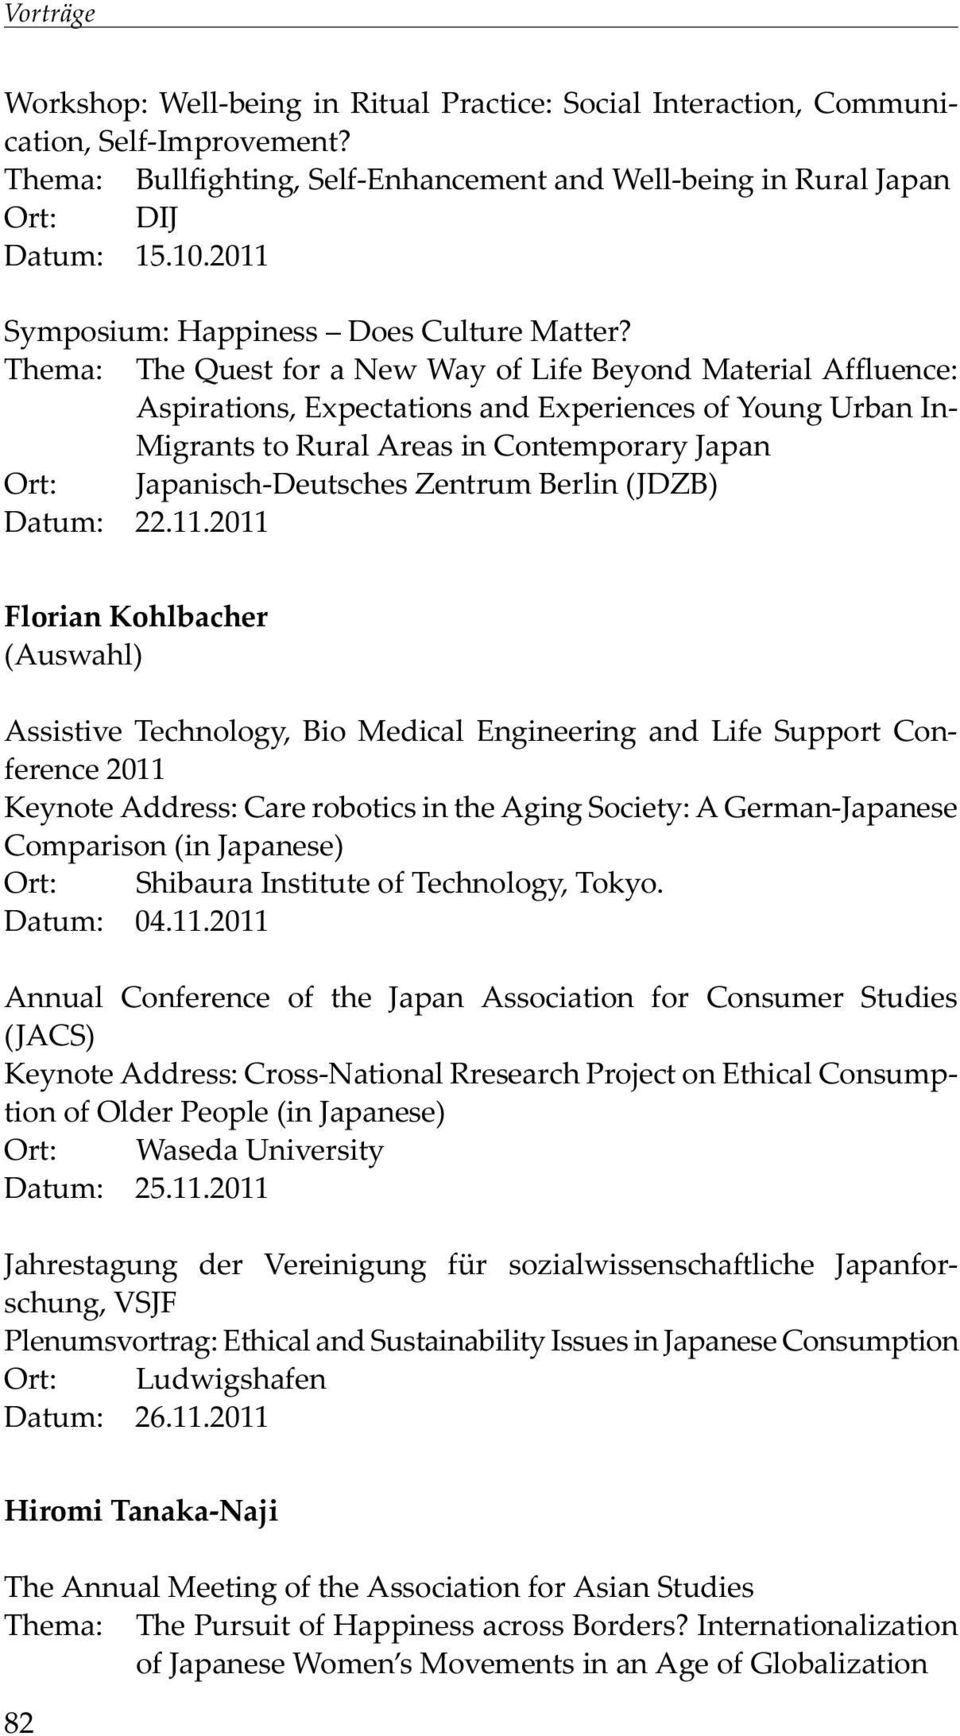 Thema: The Quest for a New Way of Life Beyond Material Affluence: Aspirations, Expectations and Experiences of Young Urban In- Migrants to Rural Areas in Contemporary Japan Ort: Japanisch-Deutsches